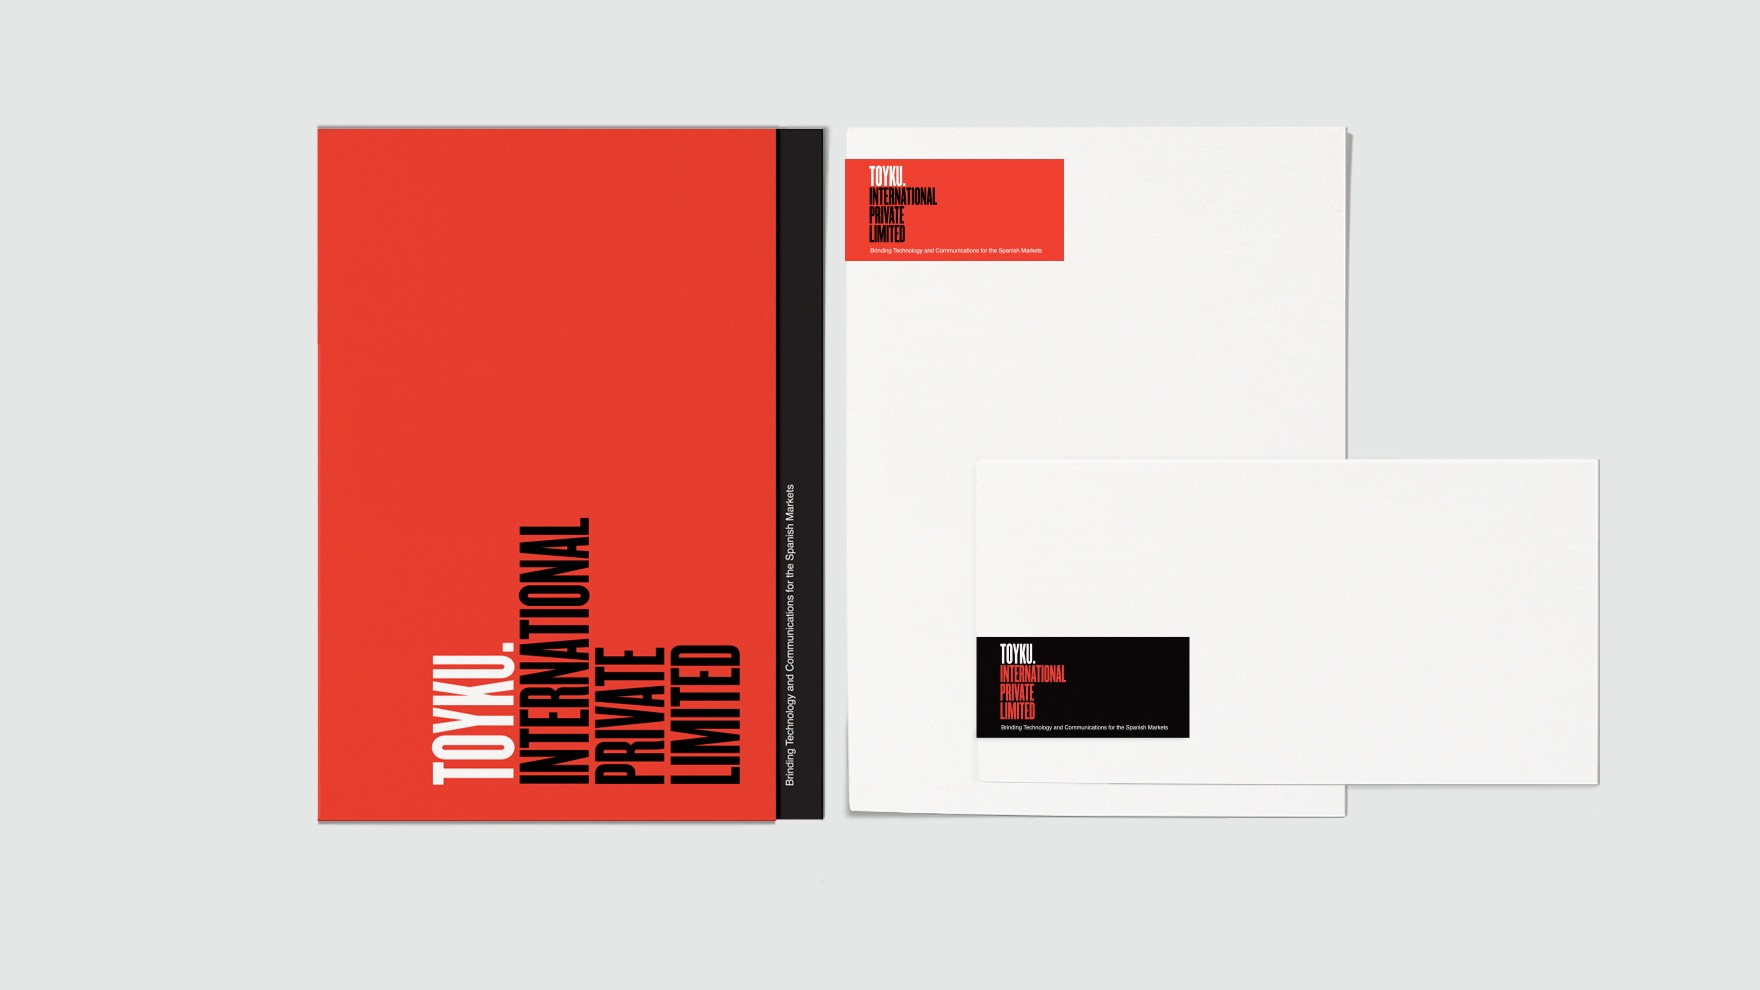 TOYKU / CORPORATE IDENTITY / BRANDING